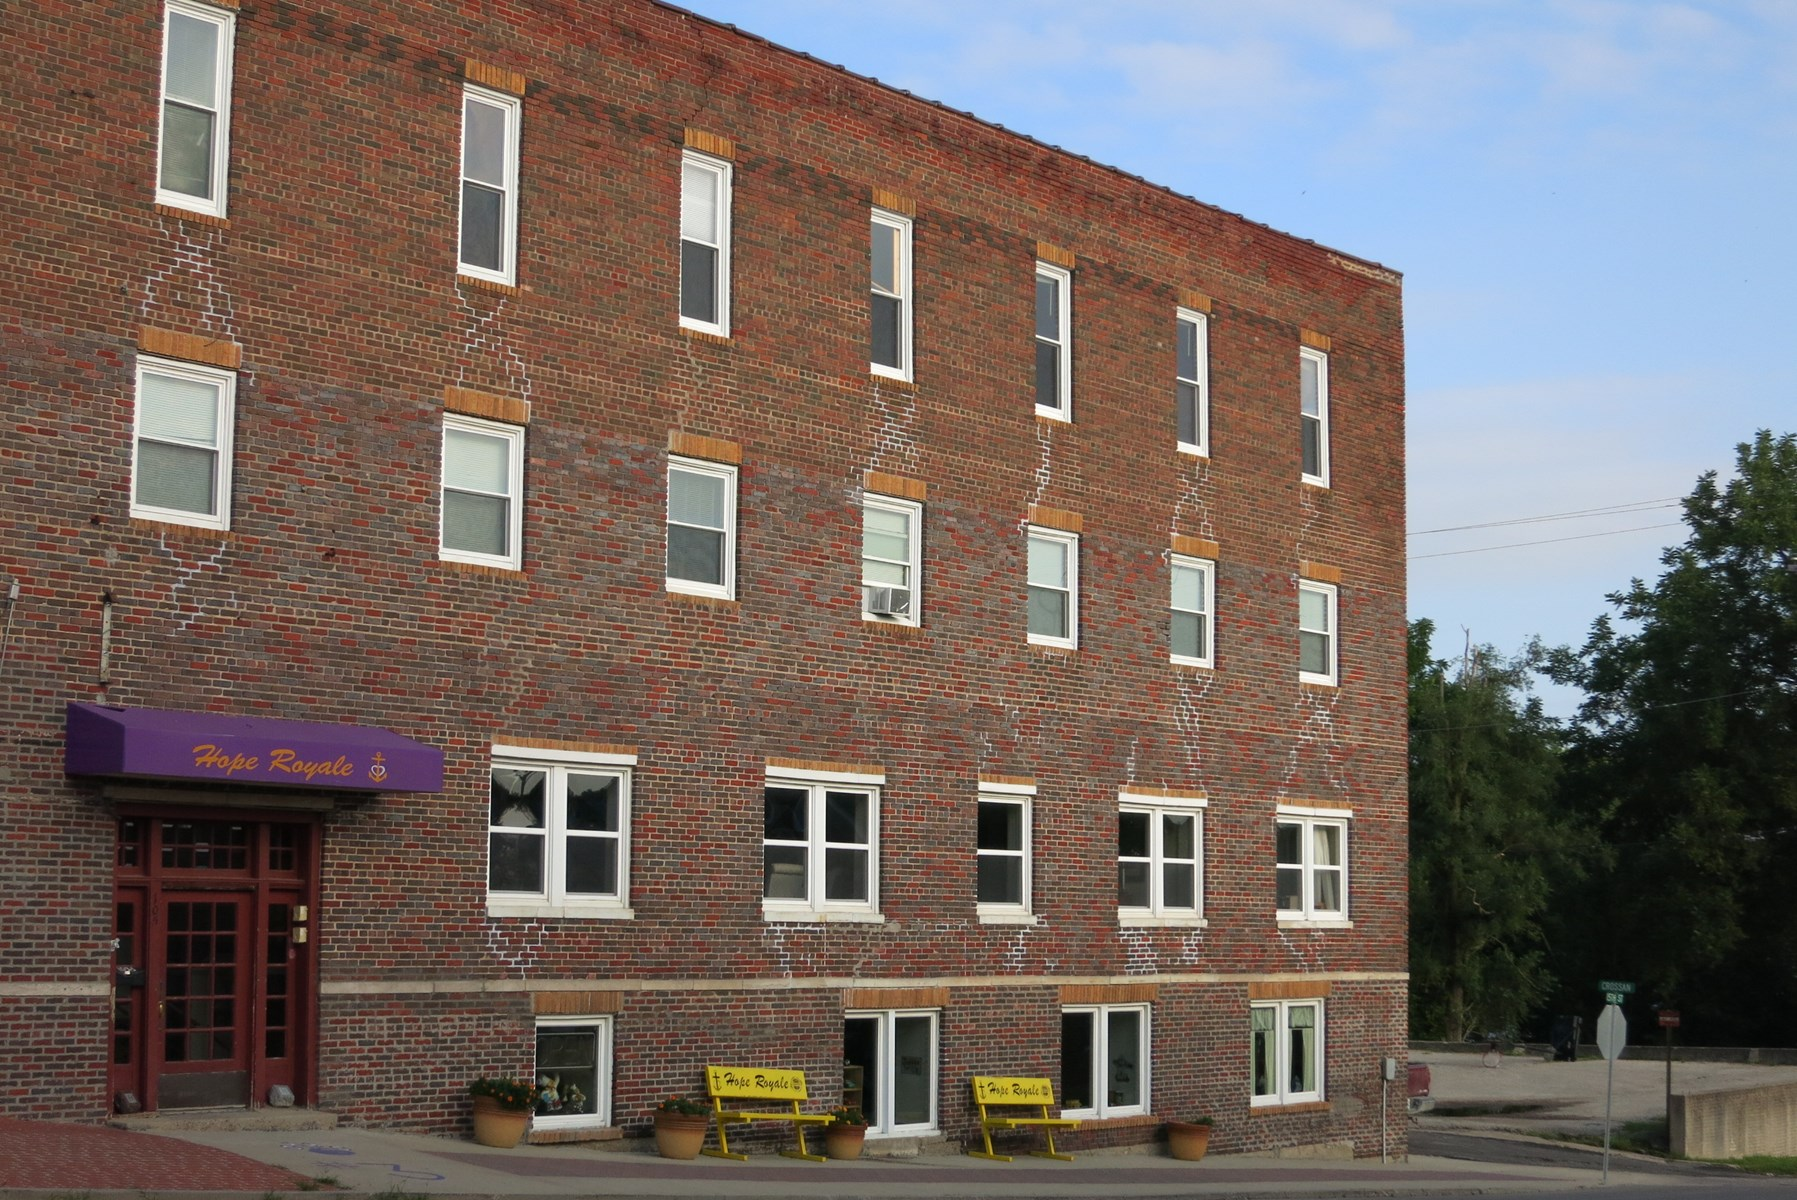 Historical Four Story Building in Bethany Missouri